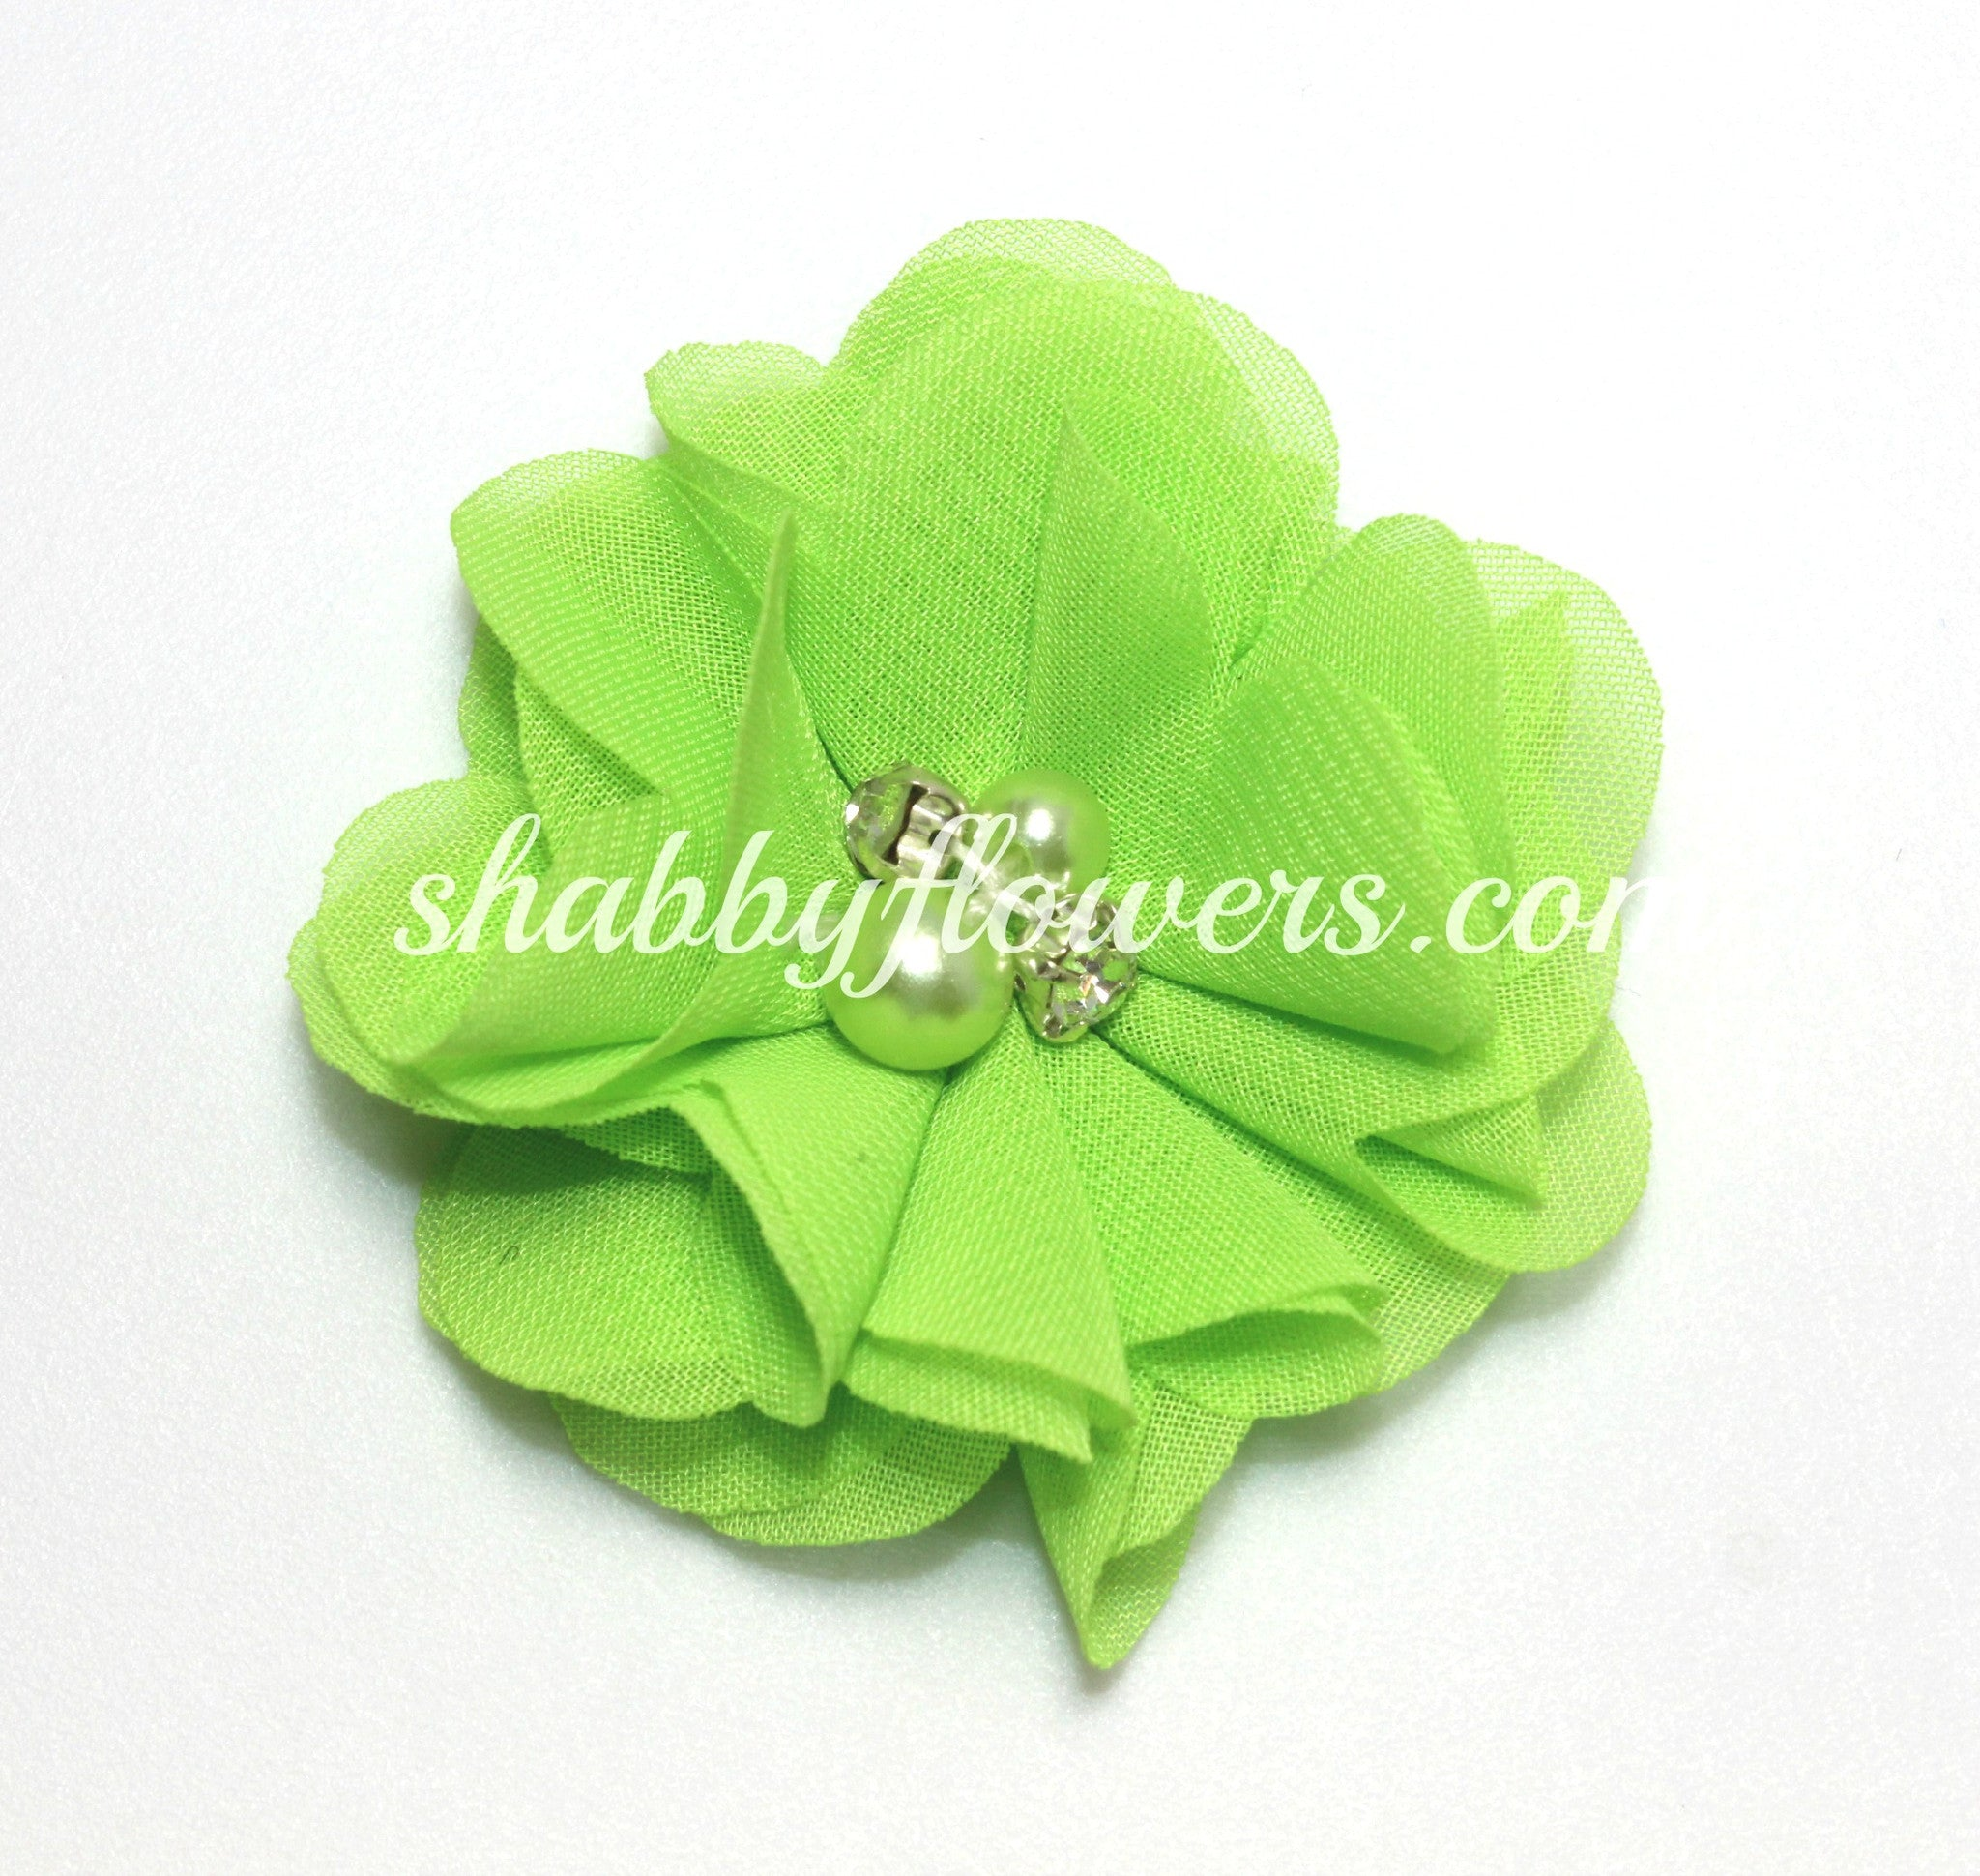 Pearl & Rhinestone Flower-Lime - shabbyflowers.com